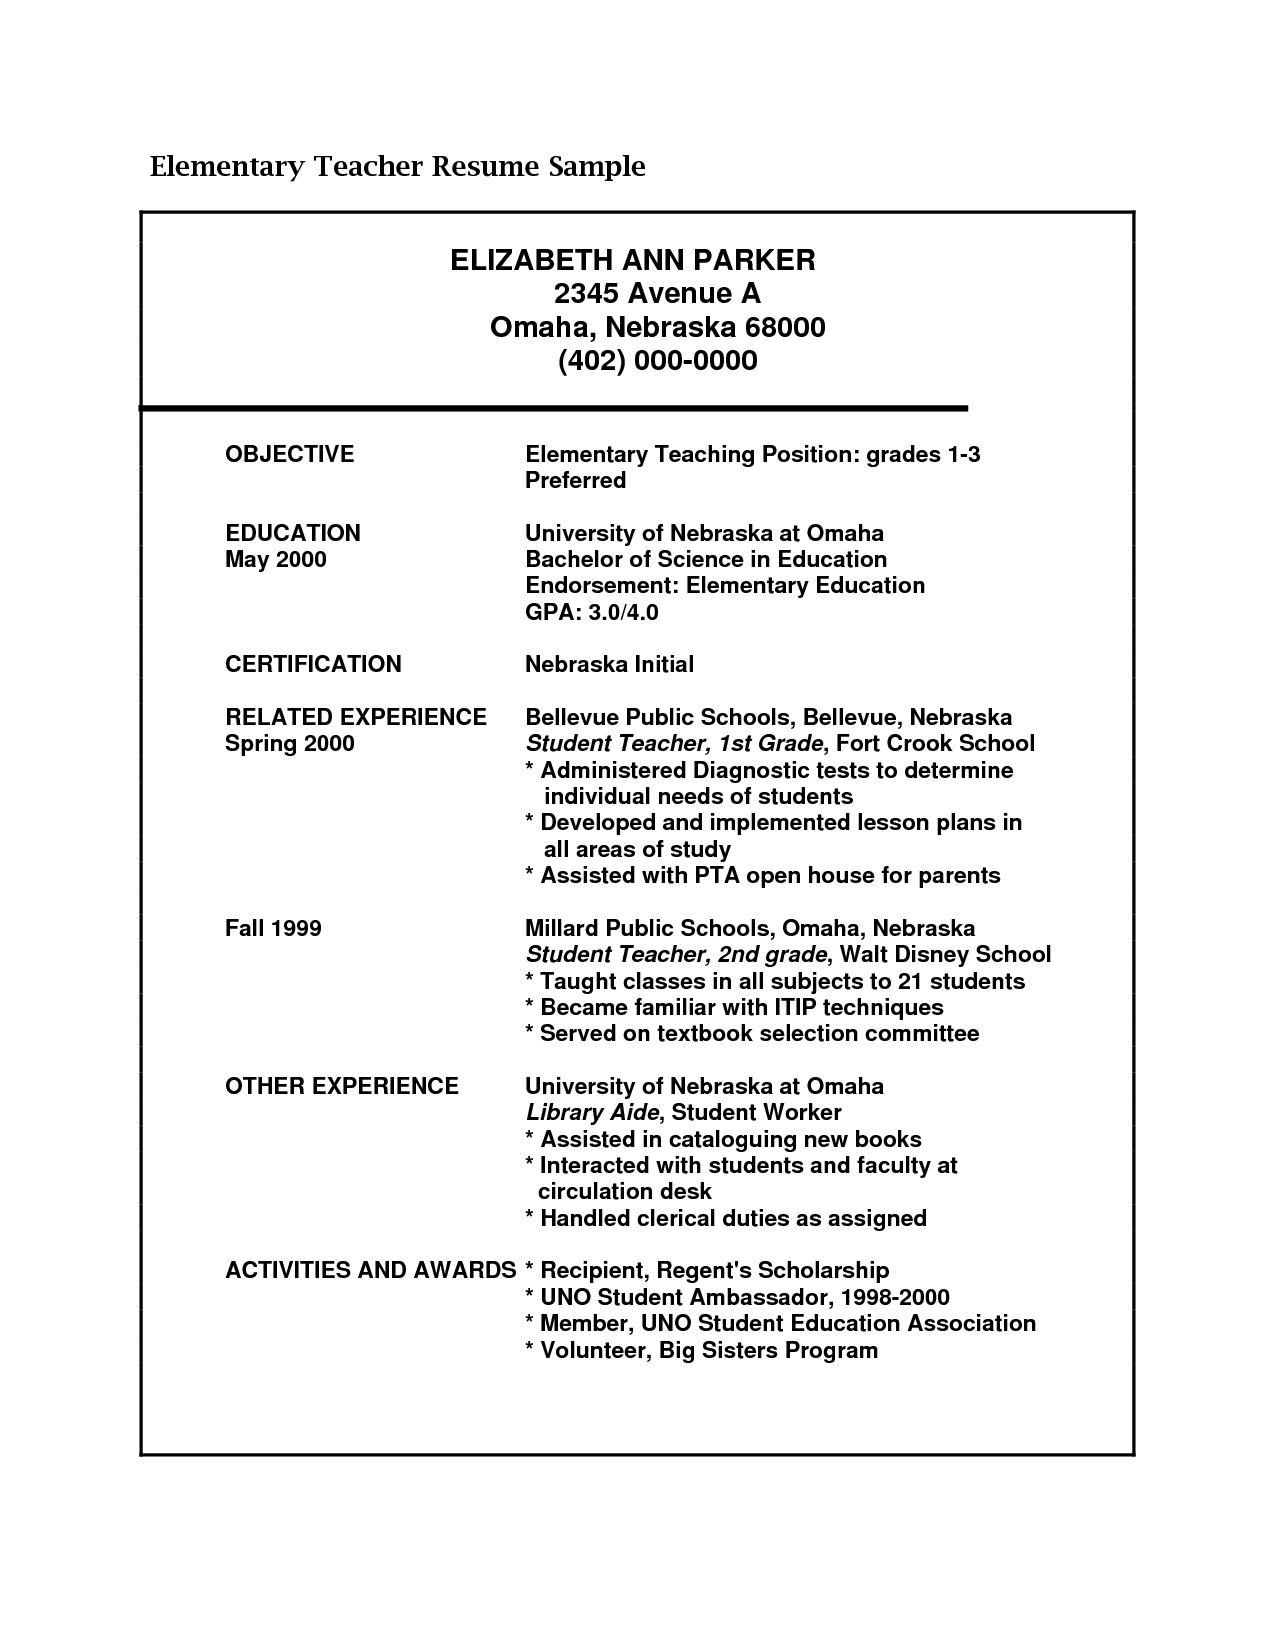 cv for teachers httpwwwteachers resumescomau - Objectives Professional Resumes